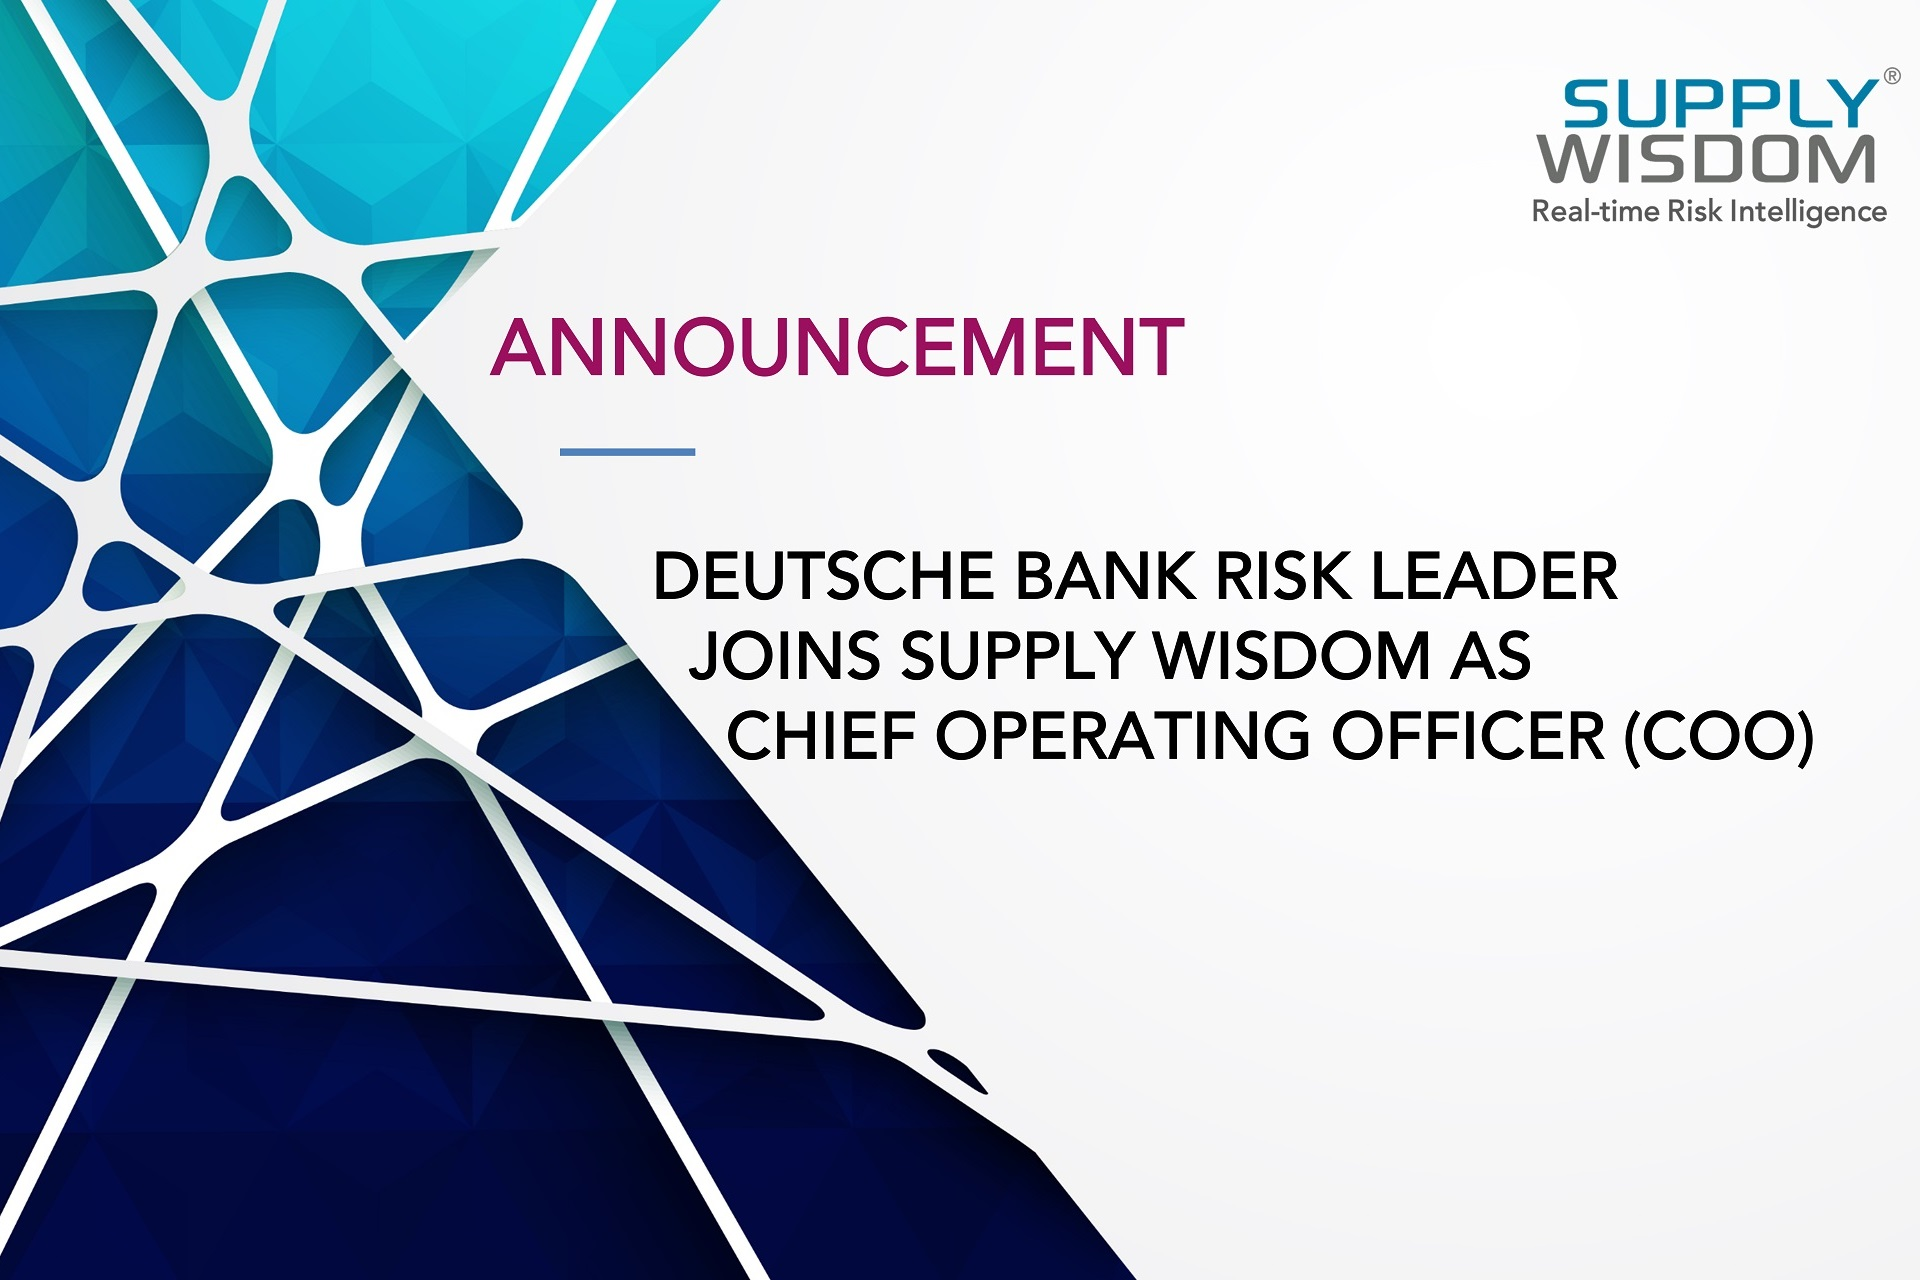 Deutsche Bank Risk Leader Victor Meyer Joins Supply Wisdom COO